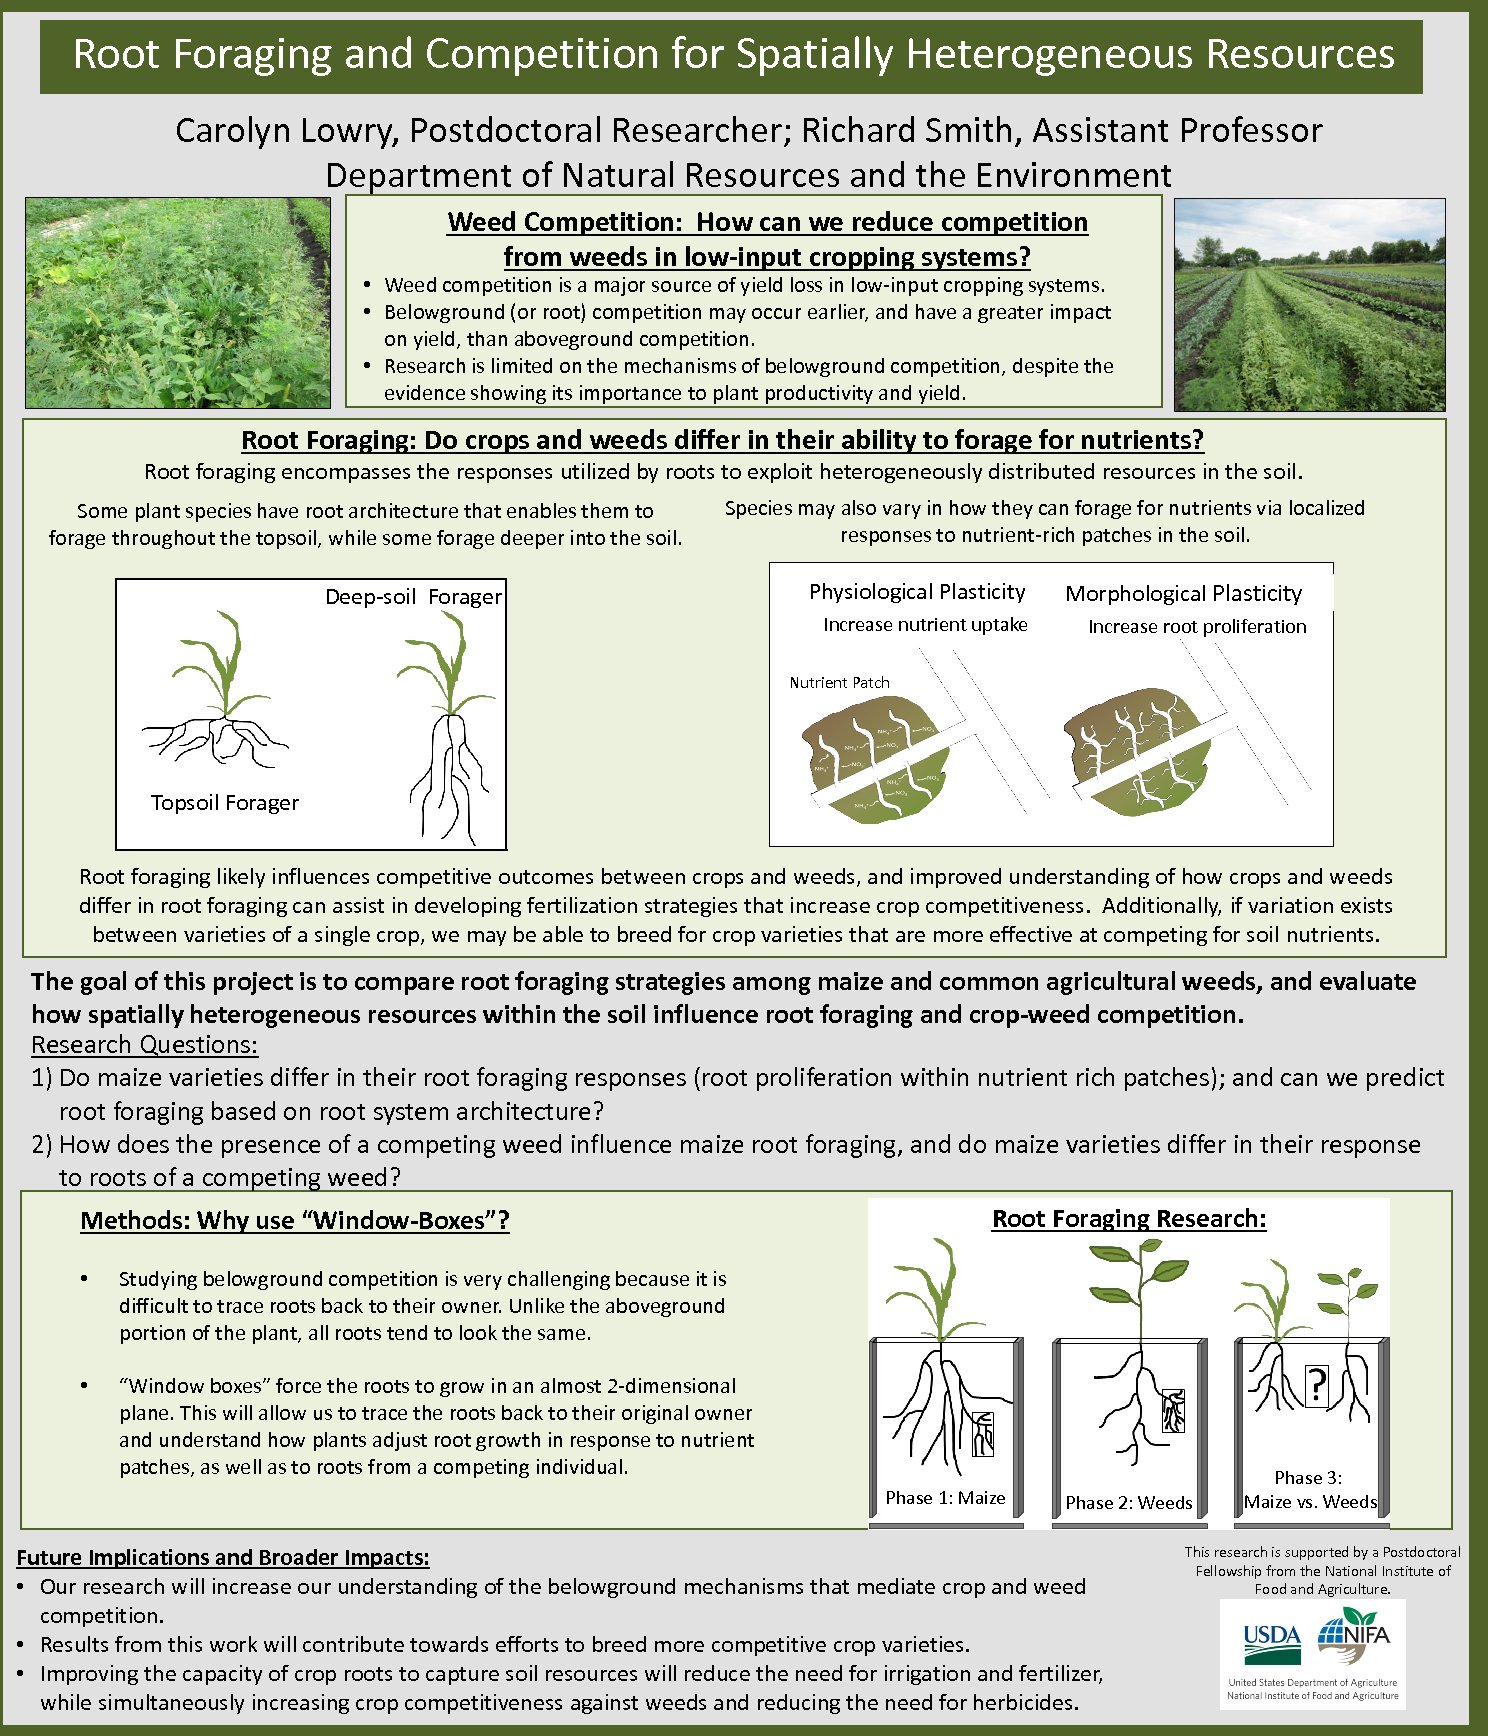 Root Foraging And Competition For Spatially Heterogeneous Resources by cl1107